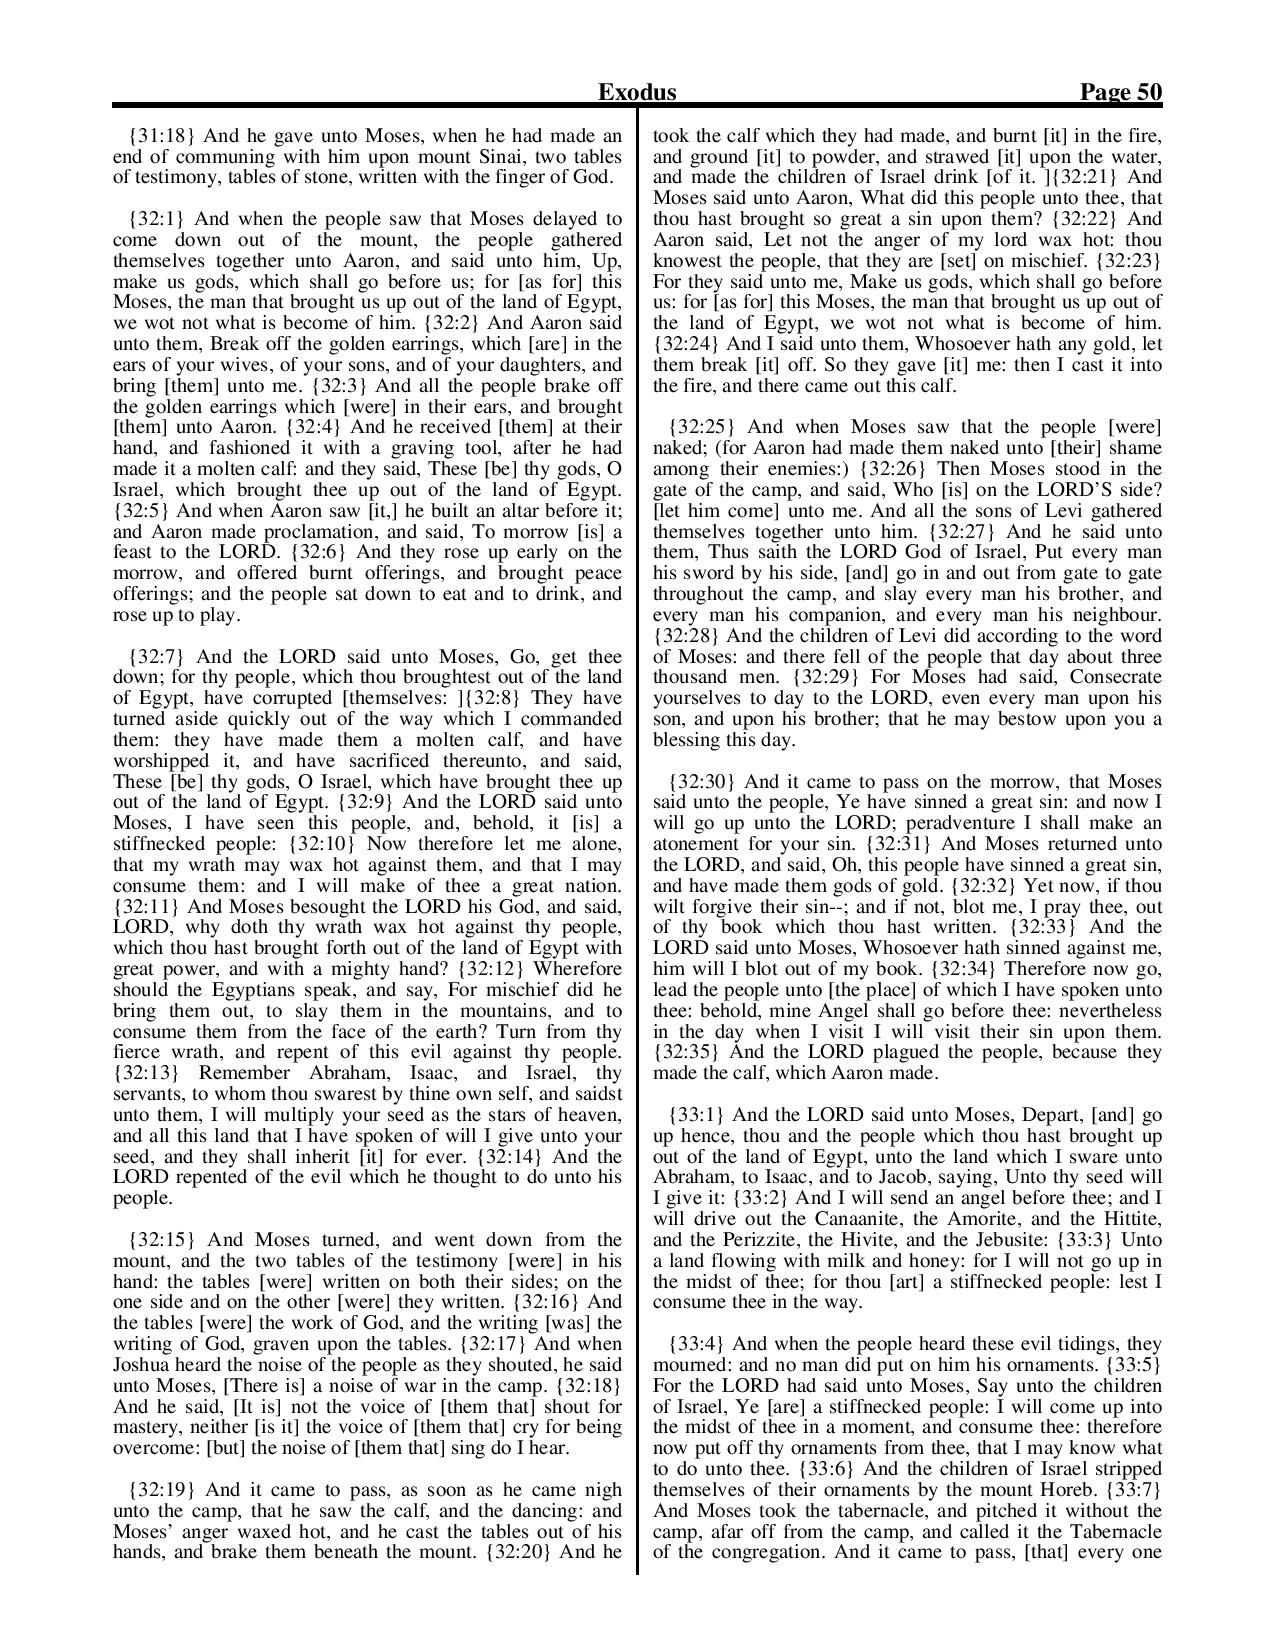 King-James-Bible-KJV-Bible-PDF-page-071